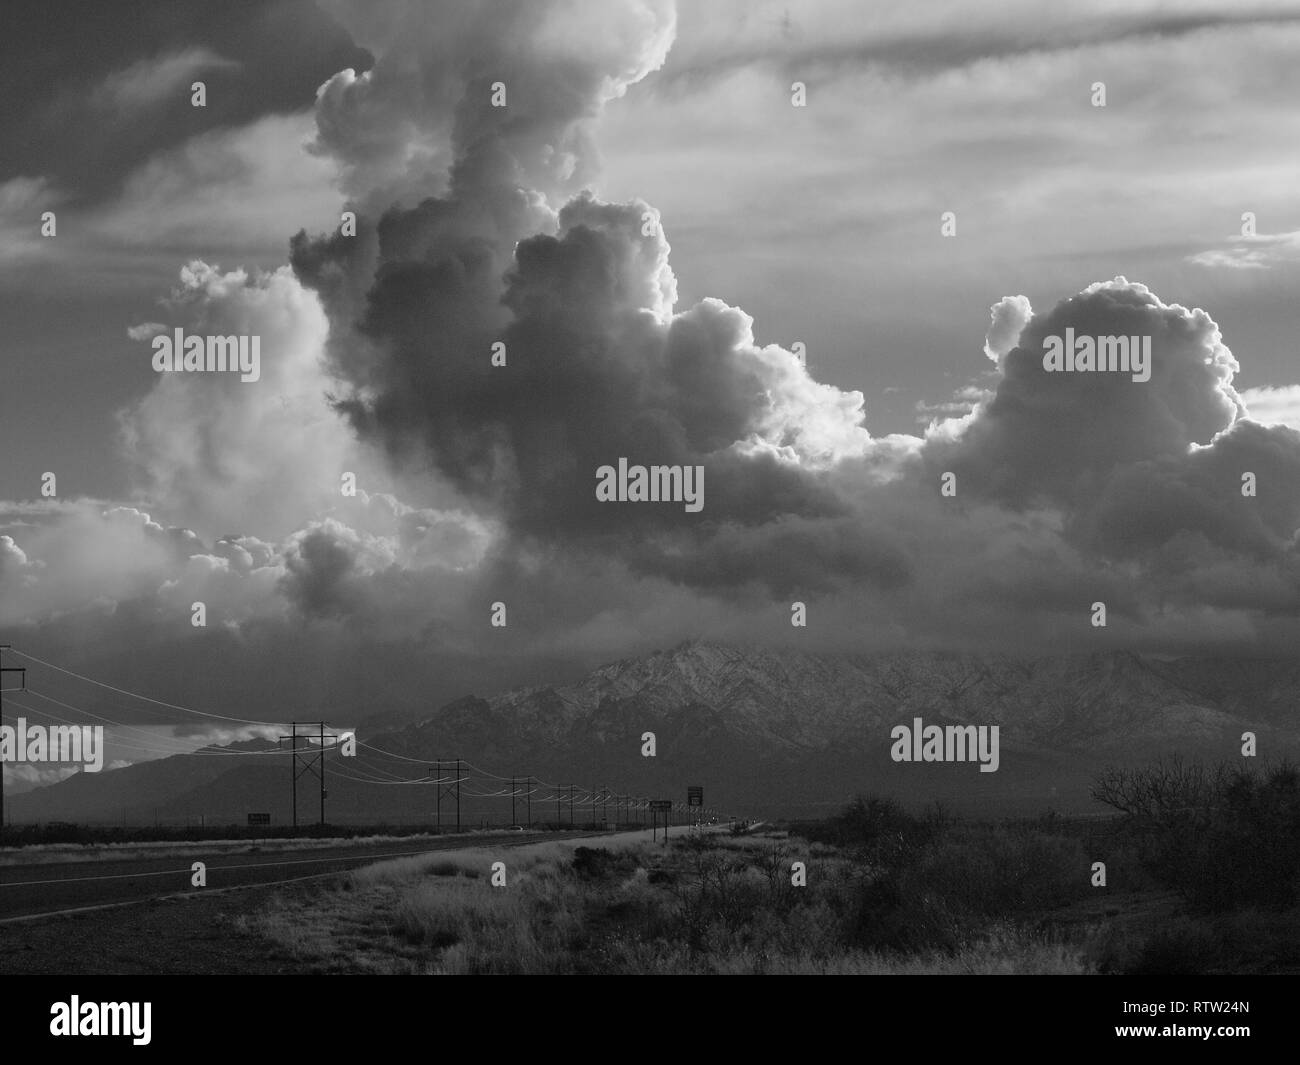 Huge billowing clouds over US 70 in New Mexico towering over mountains in black and white. Powerlines march toward the horizon. - Stock Image